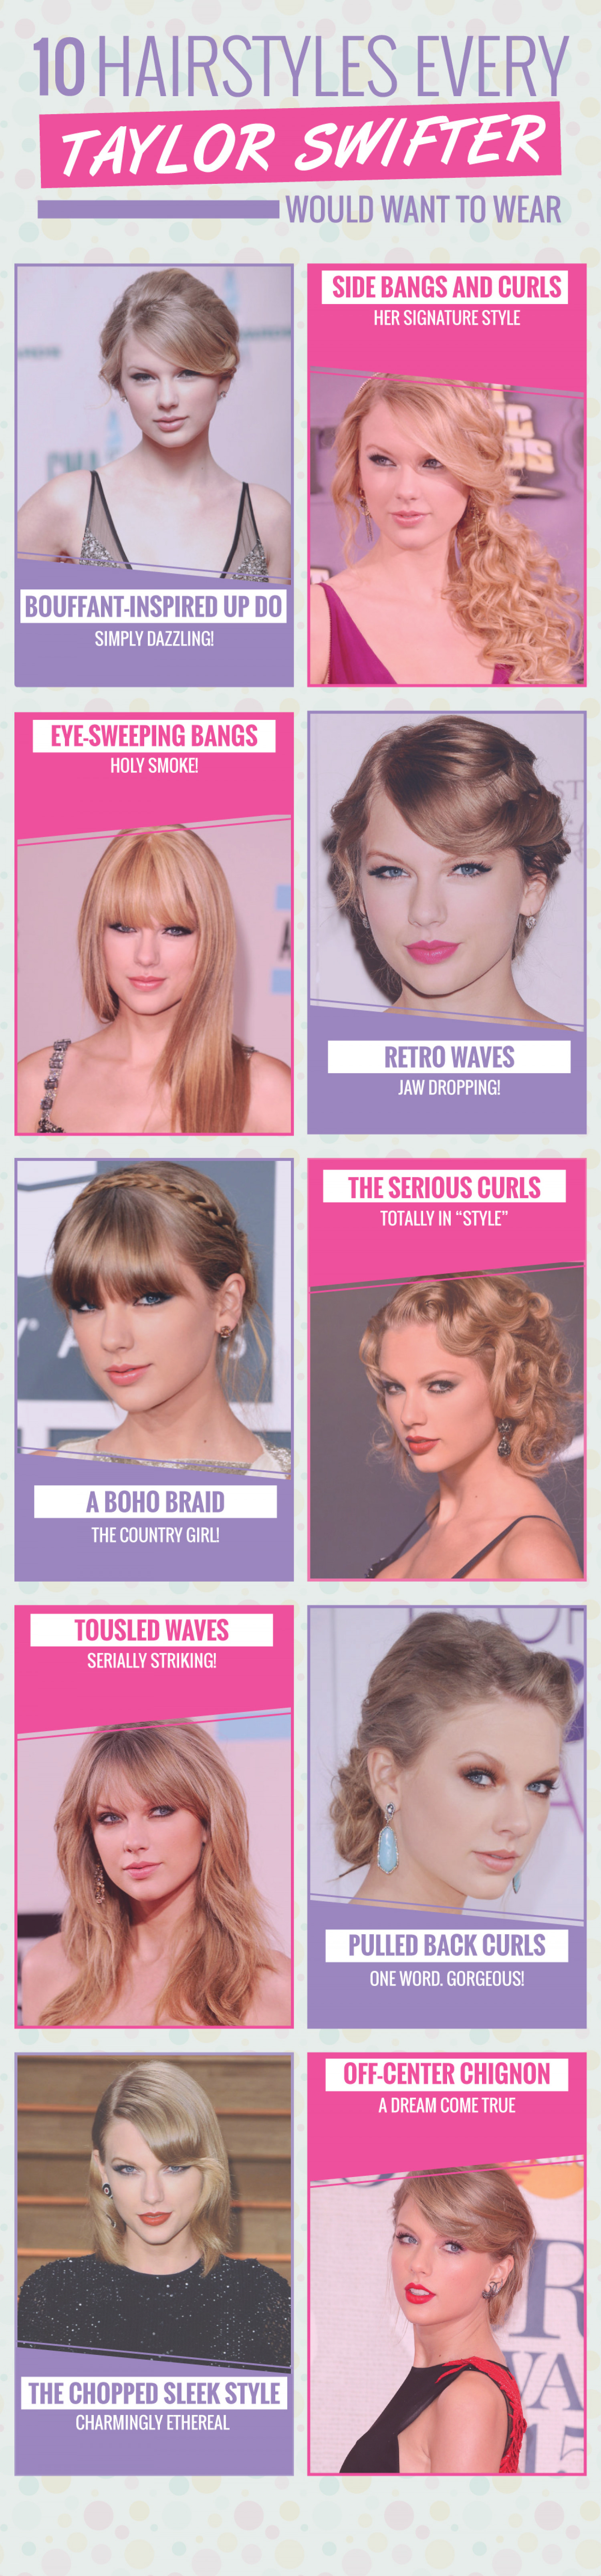 10 Hairstyles Every Swiftie Would Want To Wear! Infographic